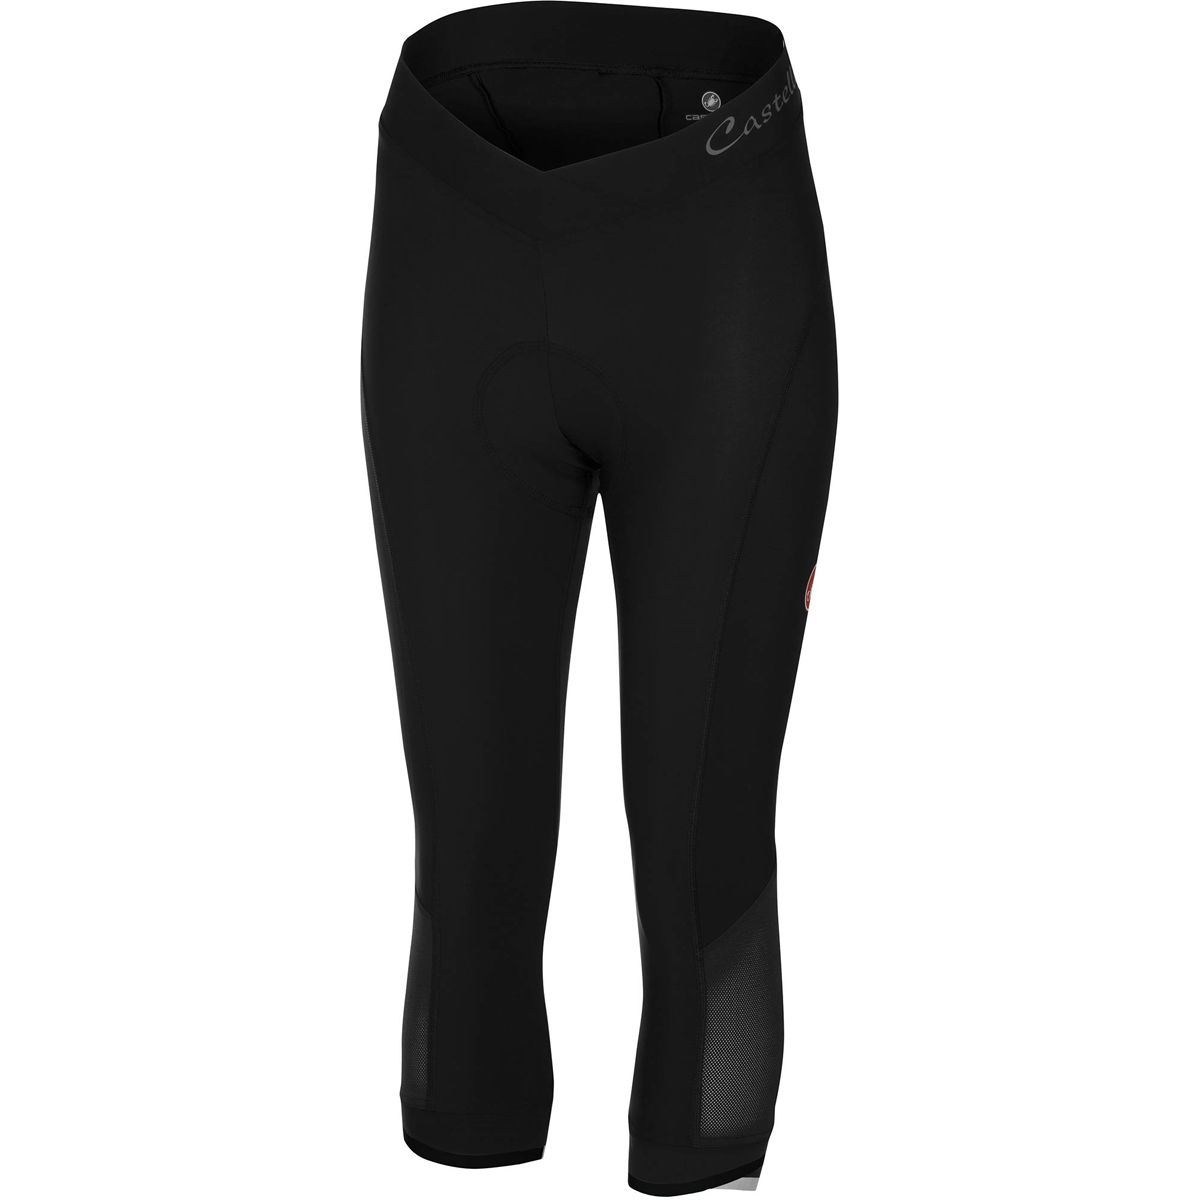 VISTA KNICKER Damen ¾ Radhose